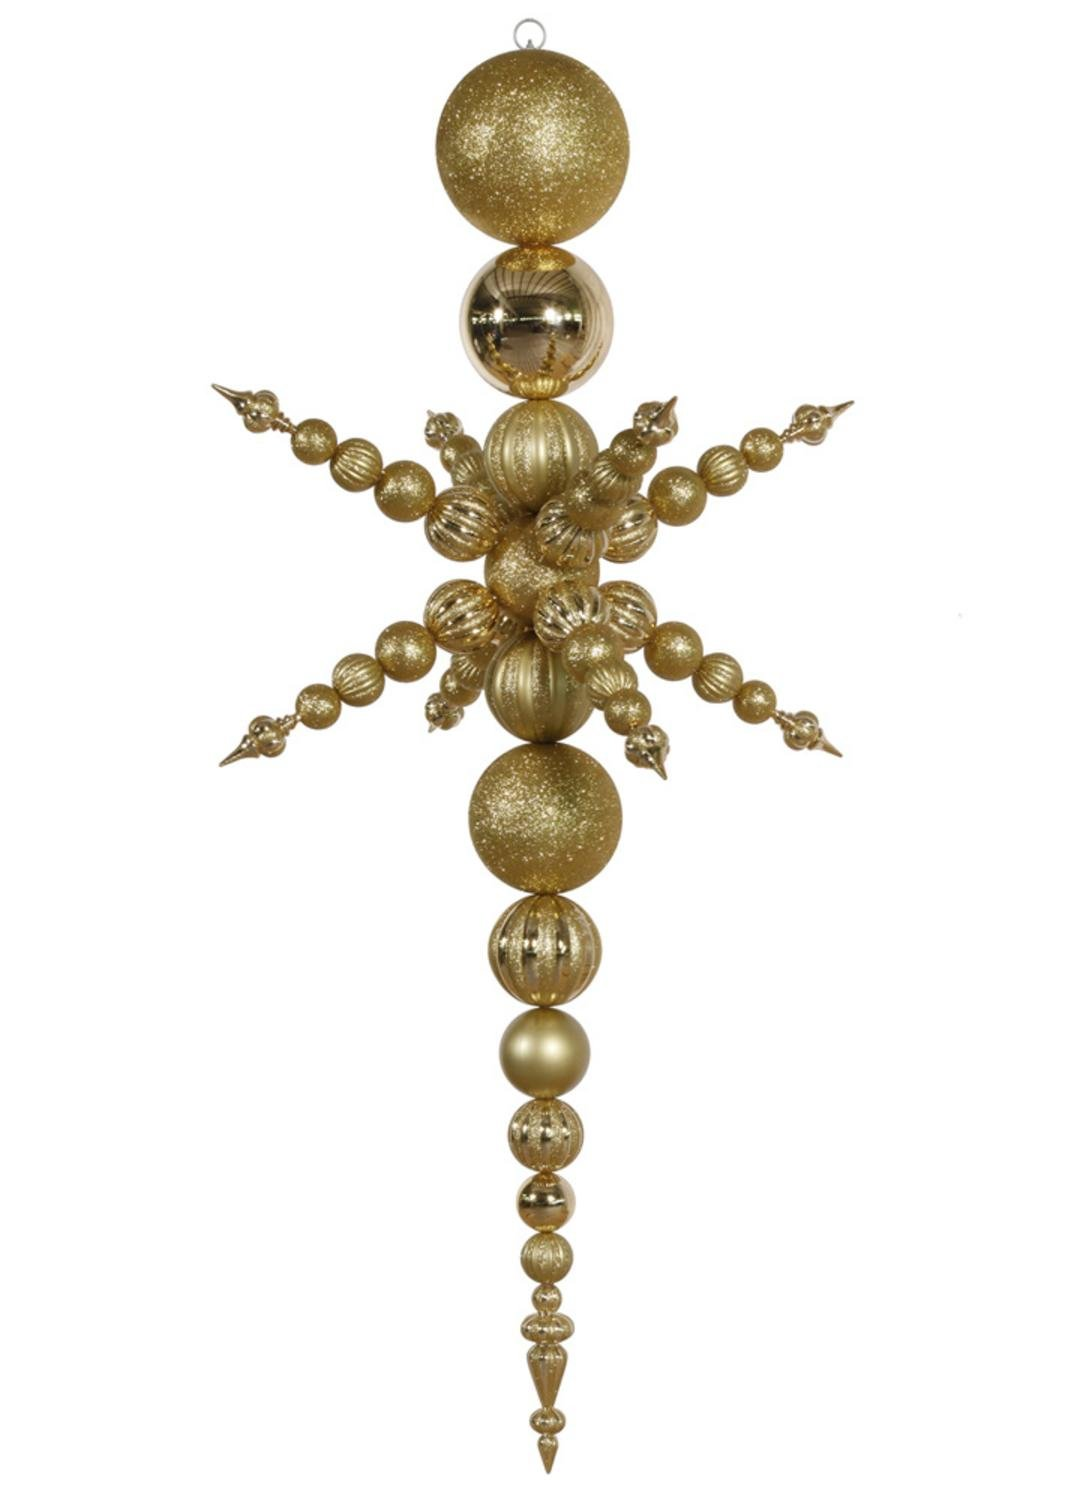 76'' Gold Commercial Shatterproof Radical 3-D Snowflake Christmas Finial Ornament